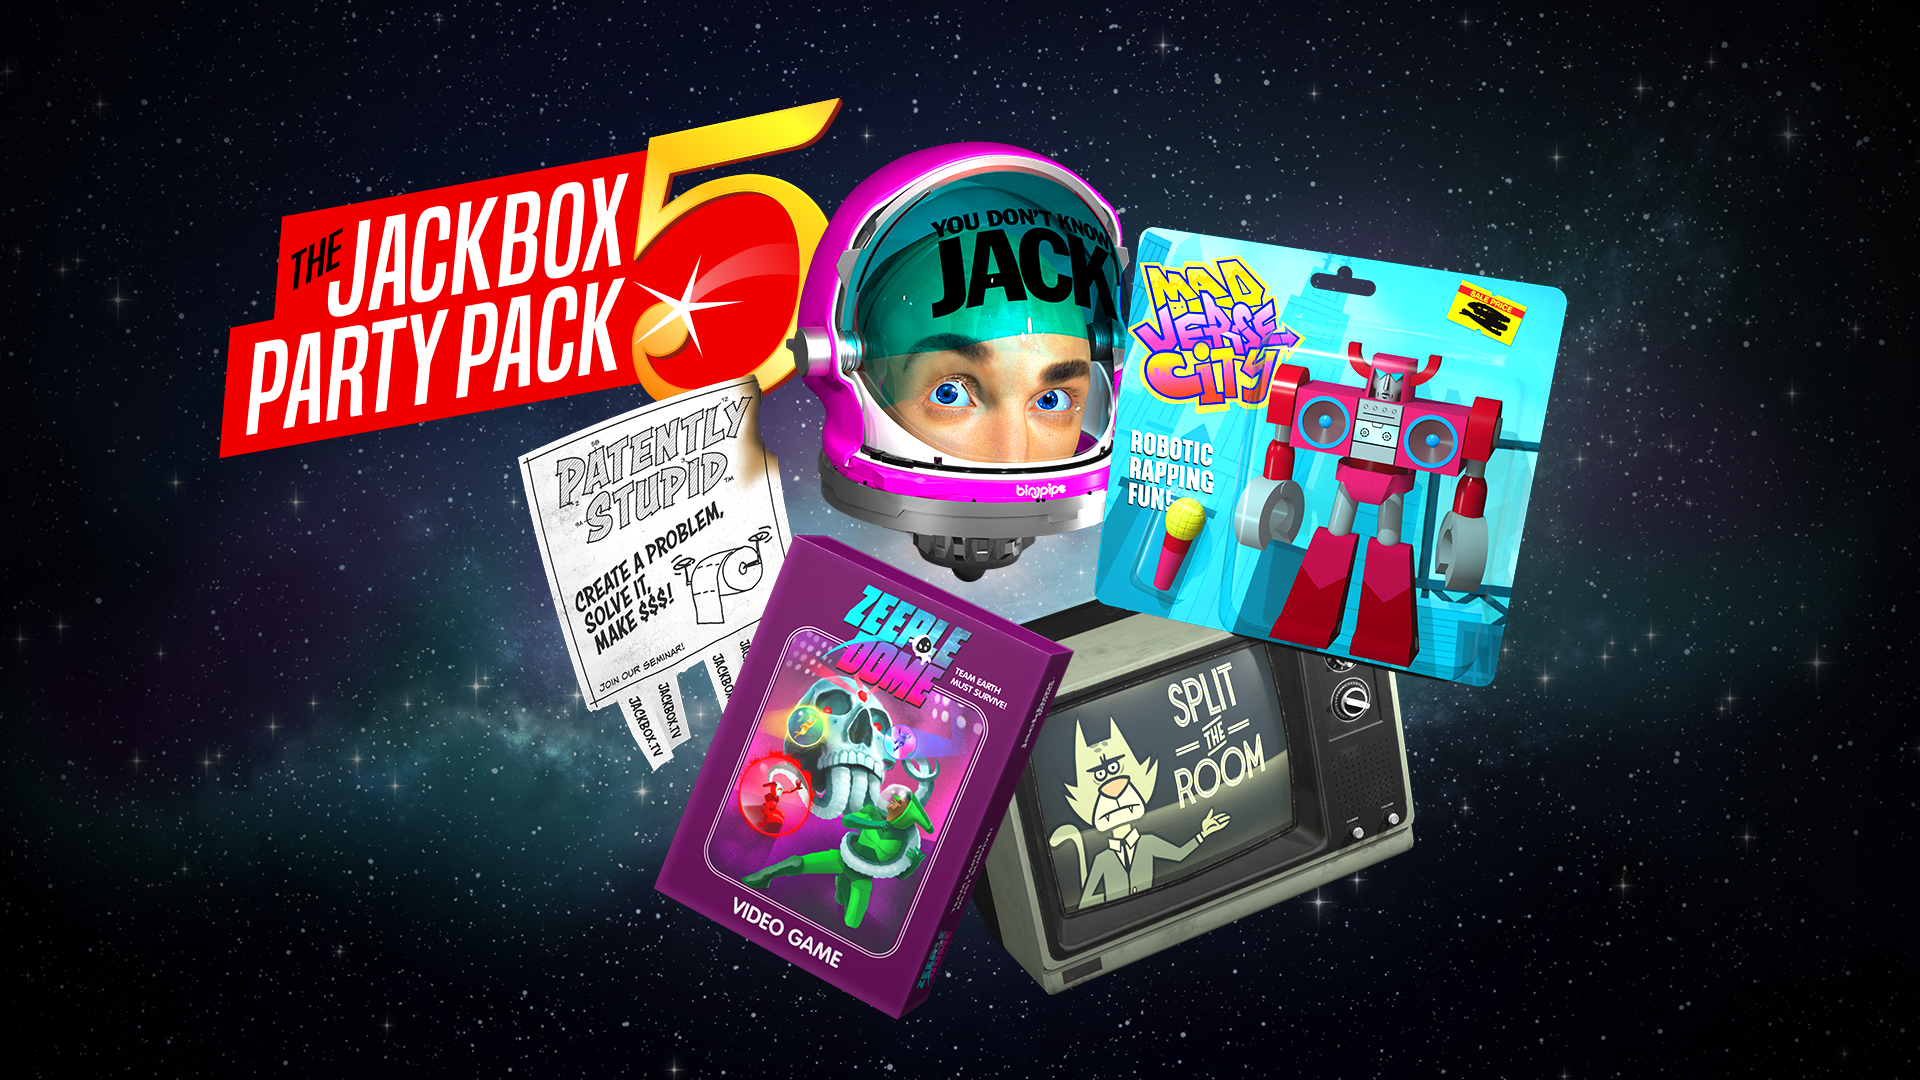 Zeeple Dome: Tossed in Space achievement for The Jackbox Party Pack 5 on Xbox One